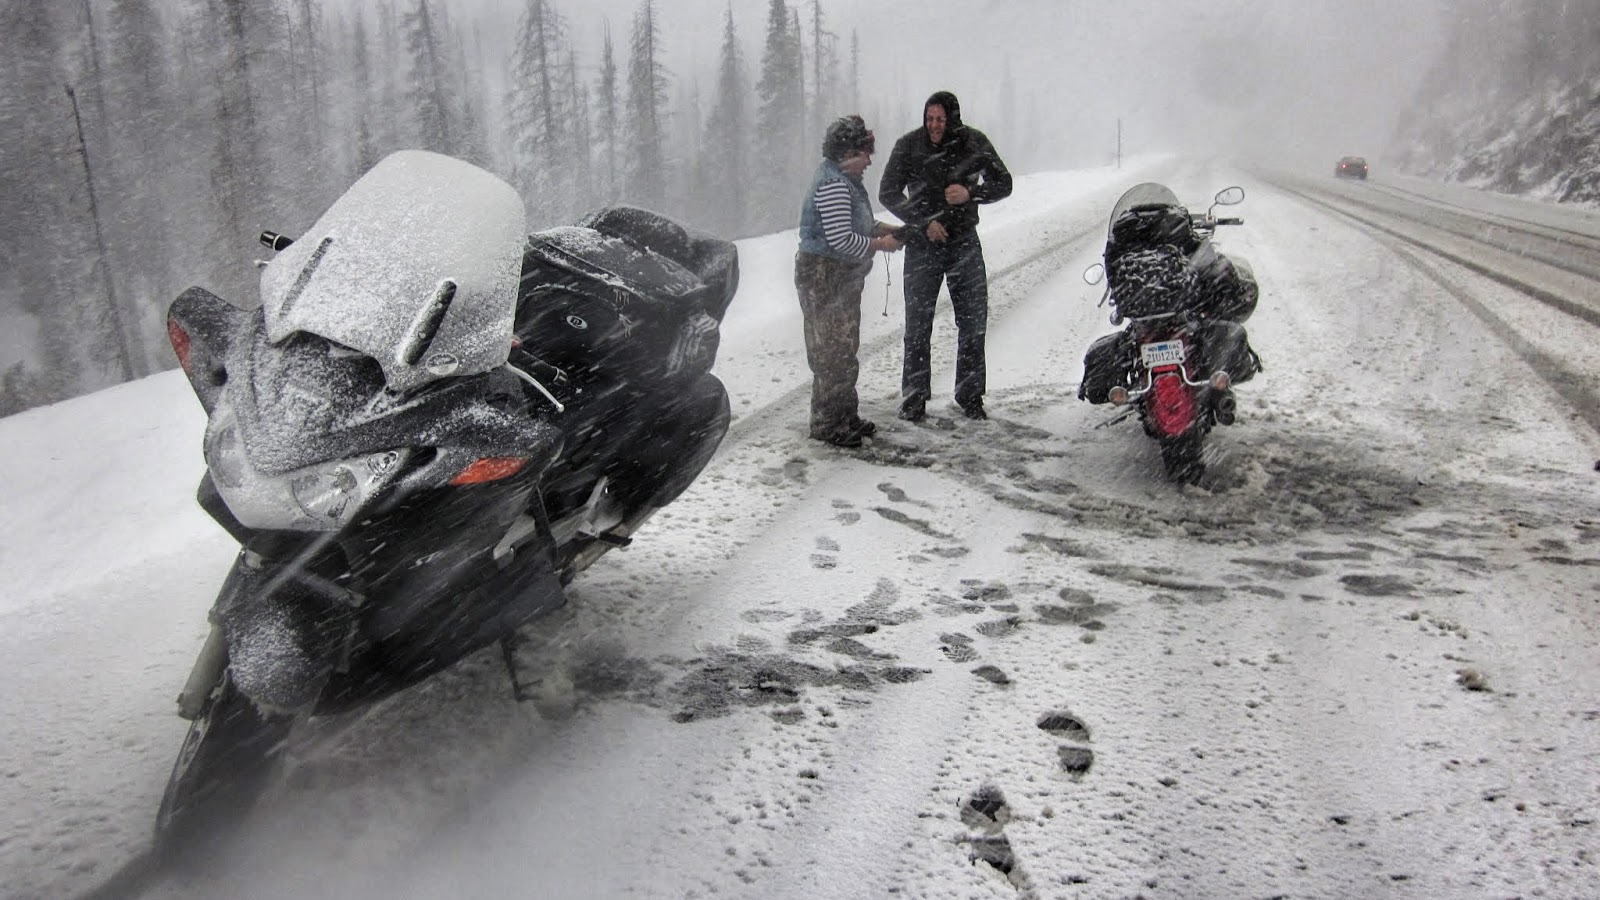 wolf creek pass snow motorcycles